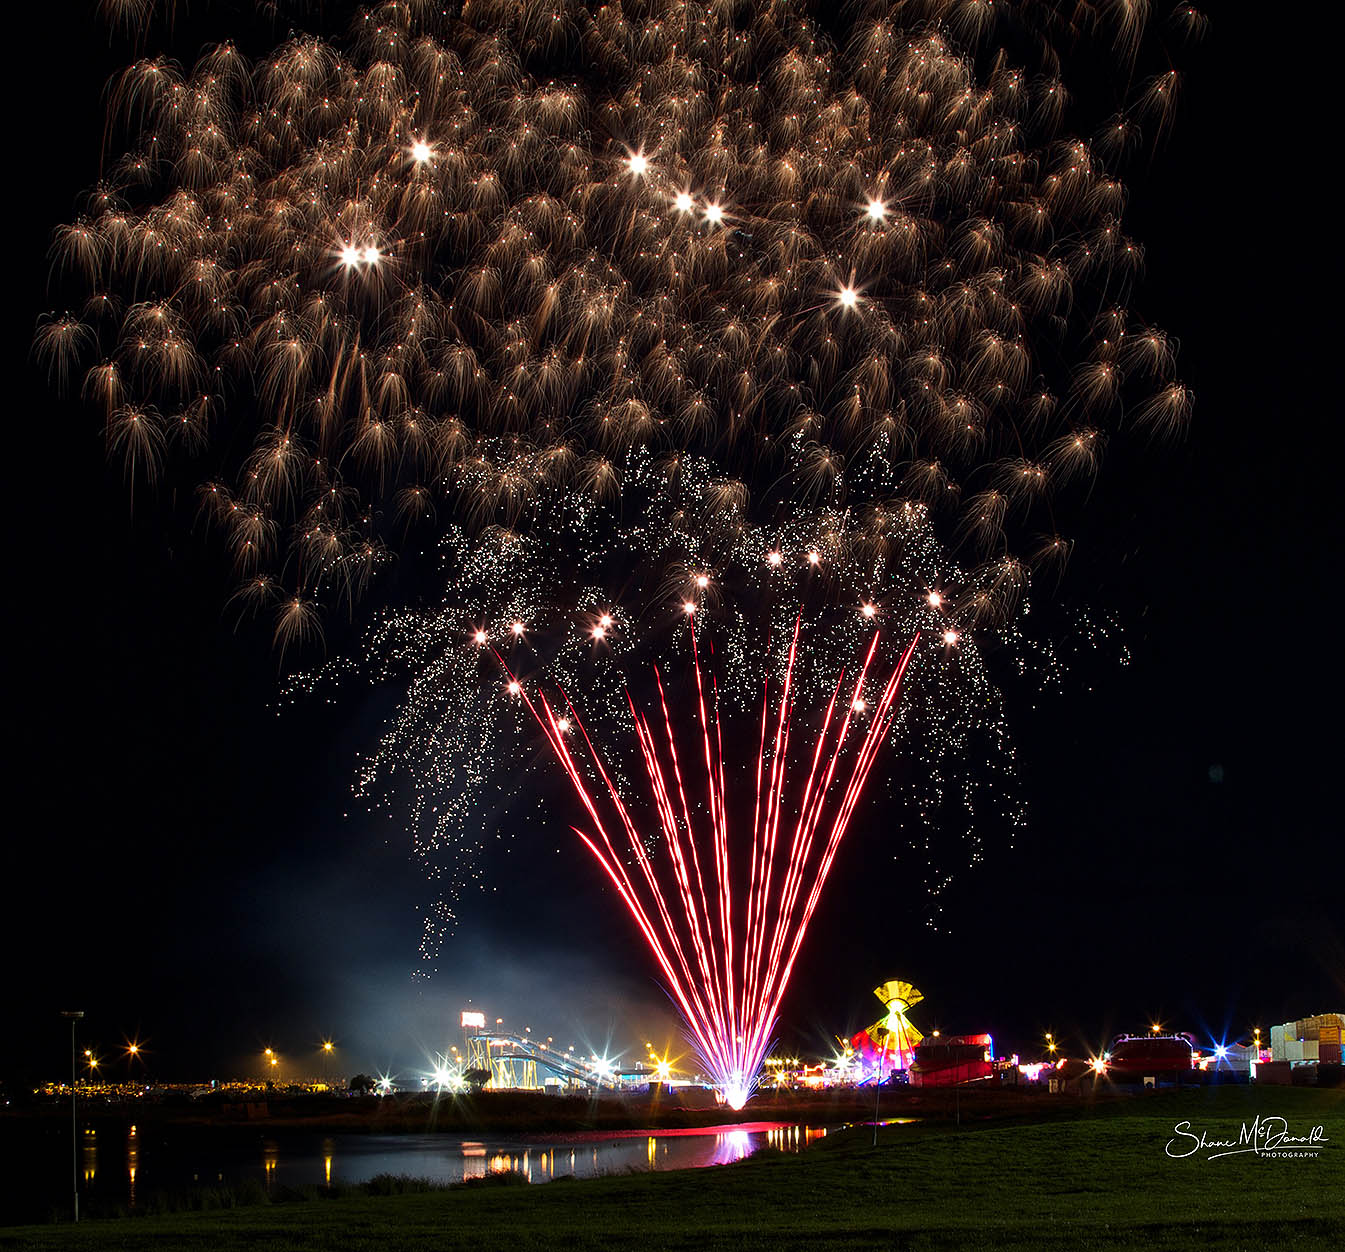 Taking Great Fireworks Photos - Tramore Fireworks Spectacular